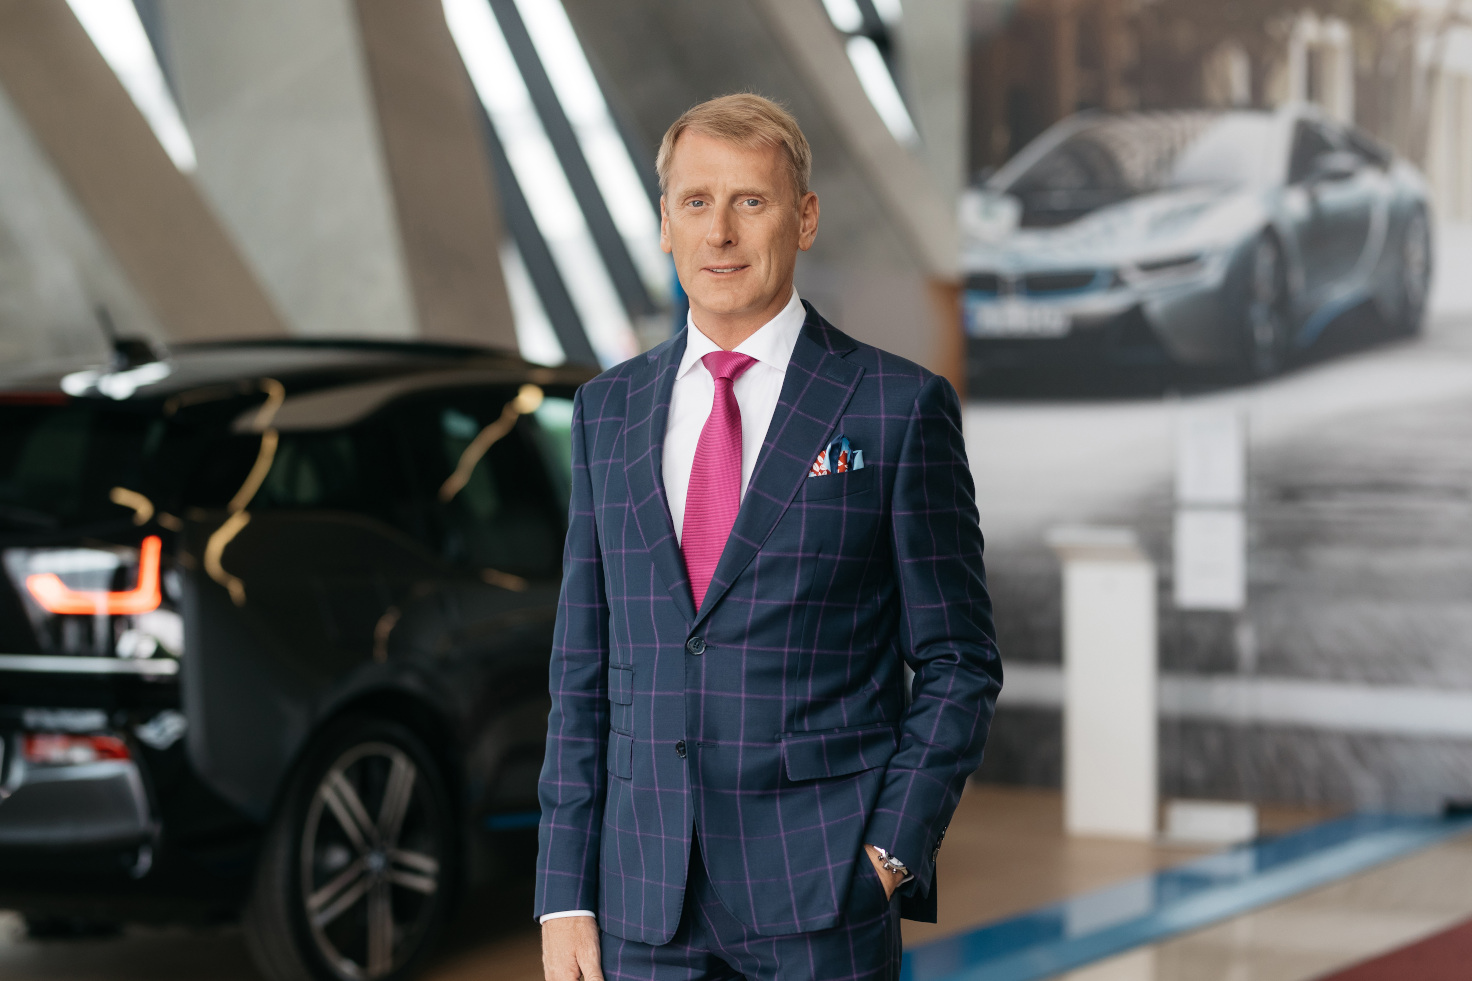 Maciej Galant, Managing Director, BMW Group Hungary